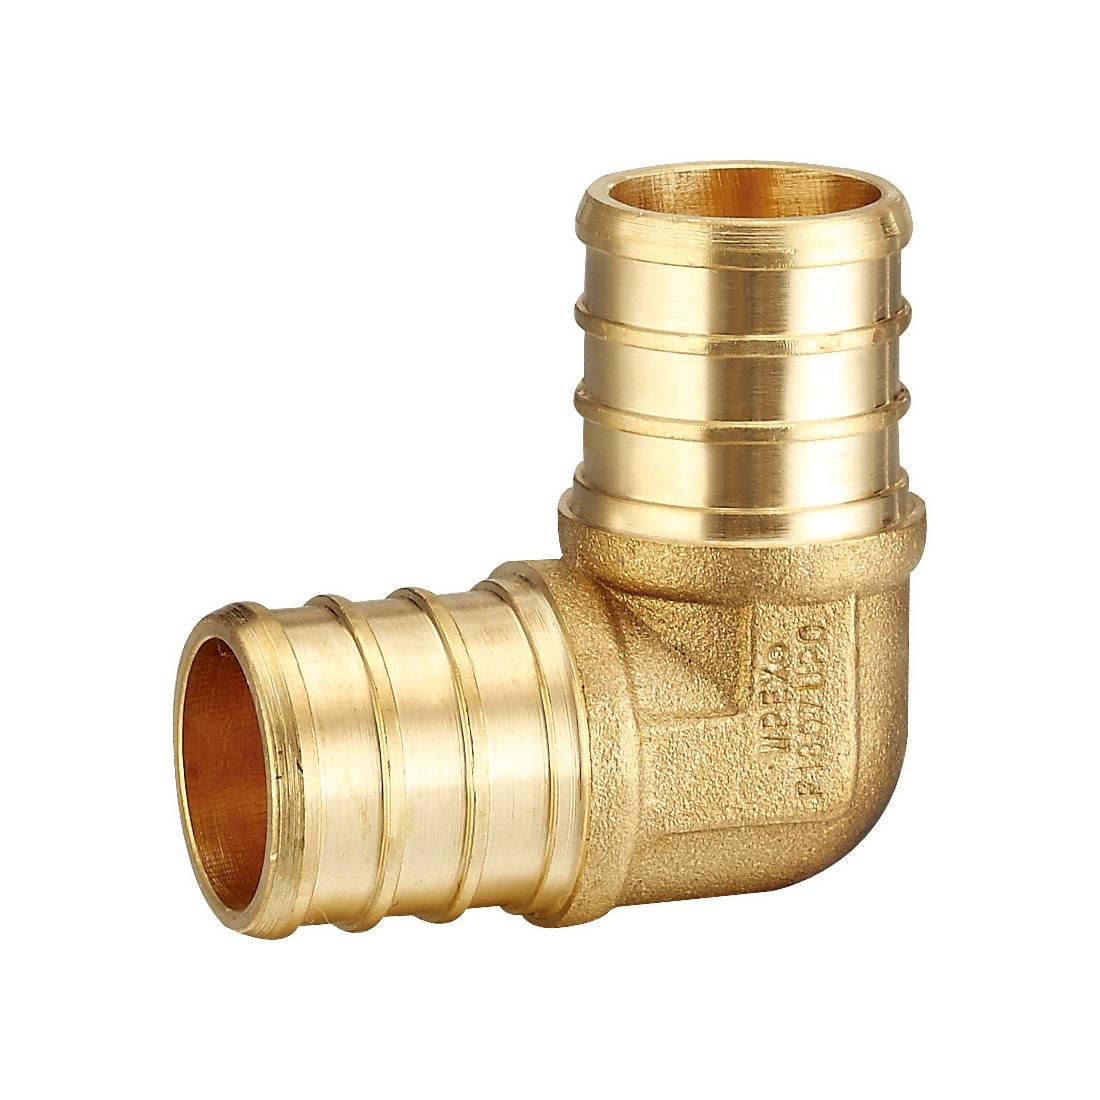 Brass PEX Fitting F1807 Featured Image